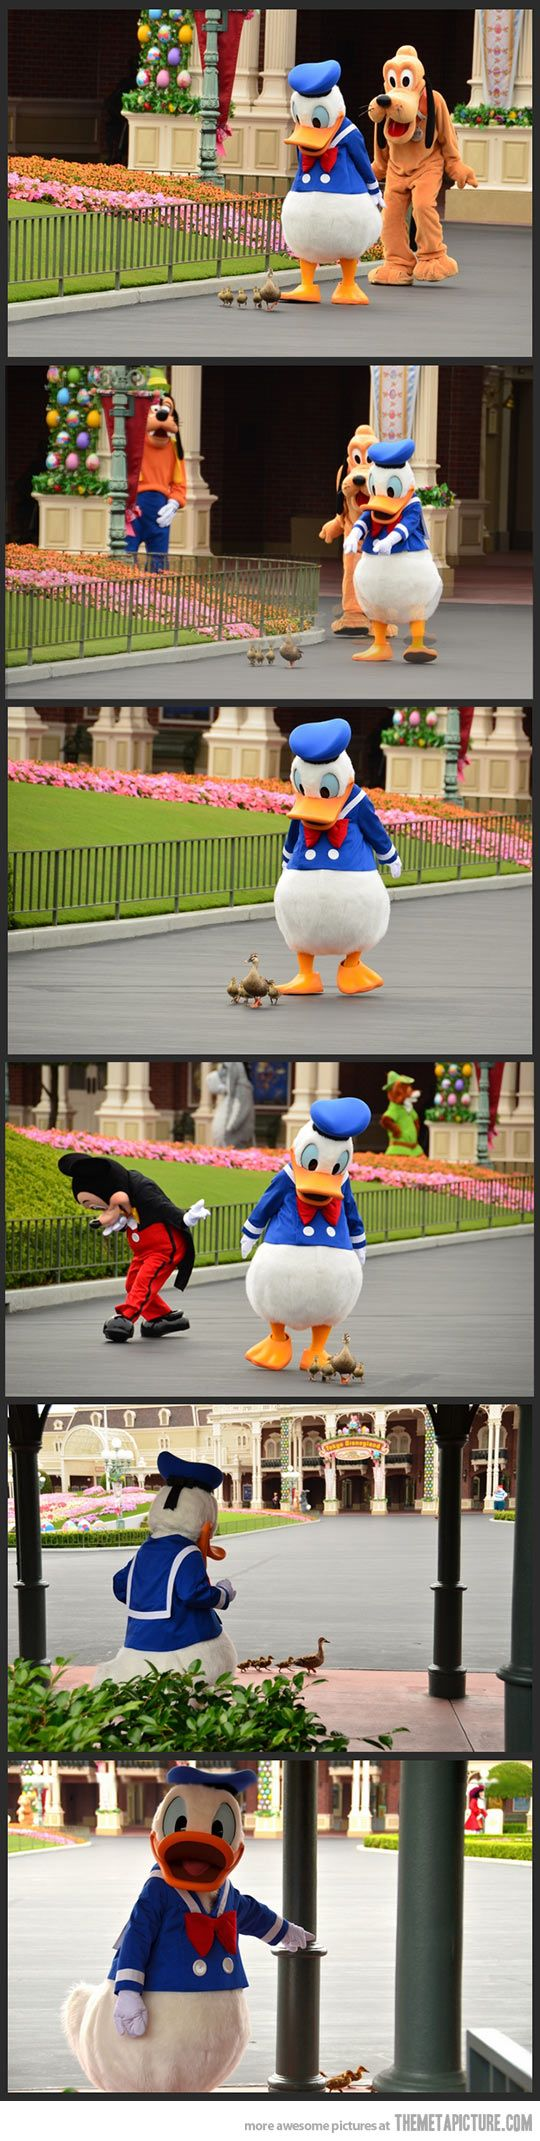 Donald Duck following ducks!